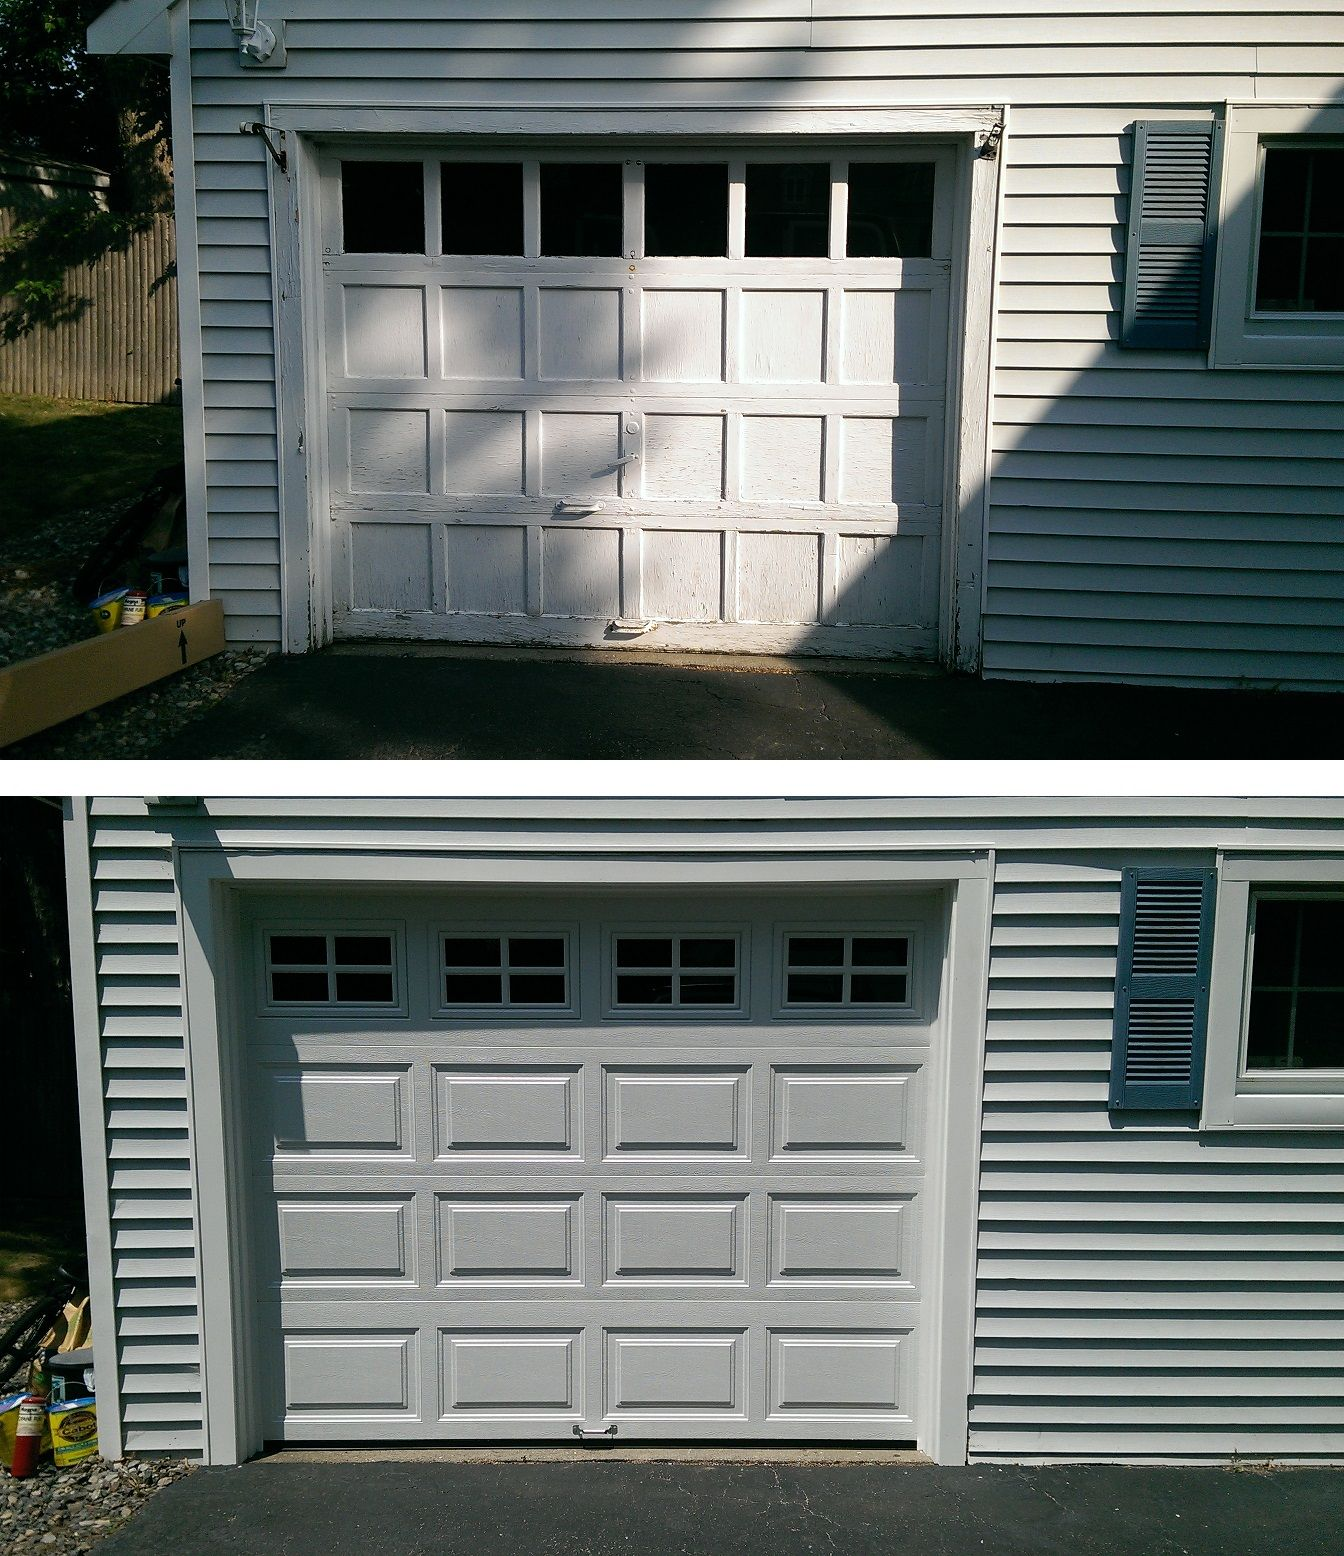 Old Wood Recessed Panel Door Replaced With Clopay 4050 Raised Panel Steel Insulated Garage Door In White With Garage Doors Garage Door Types Home Building Tips